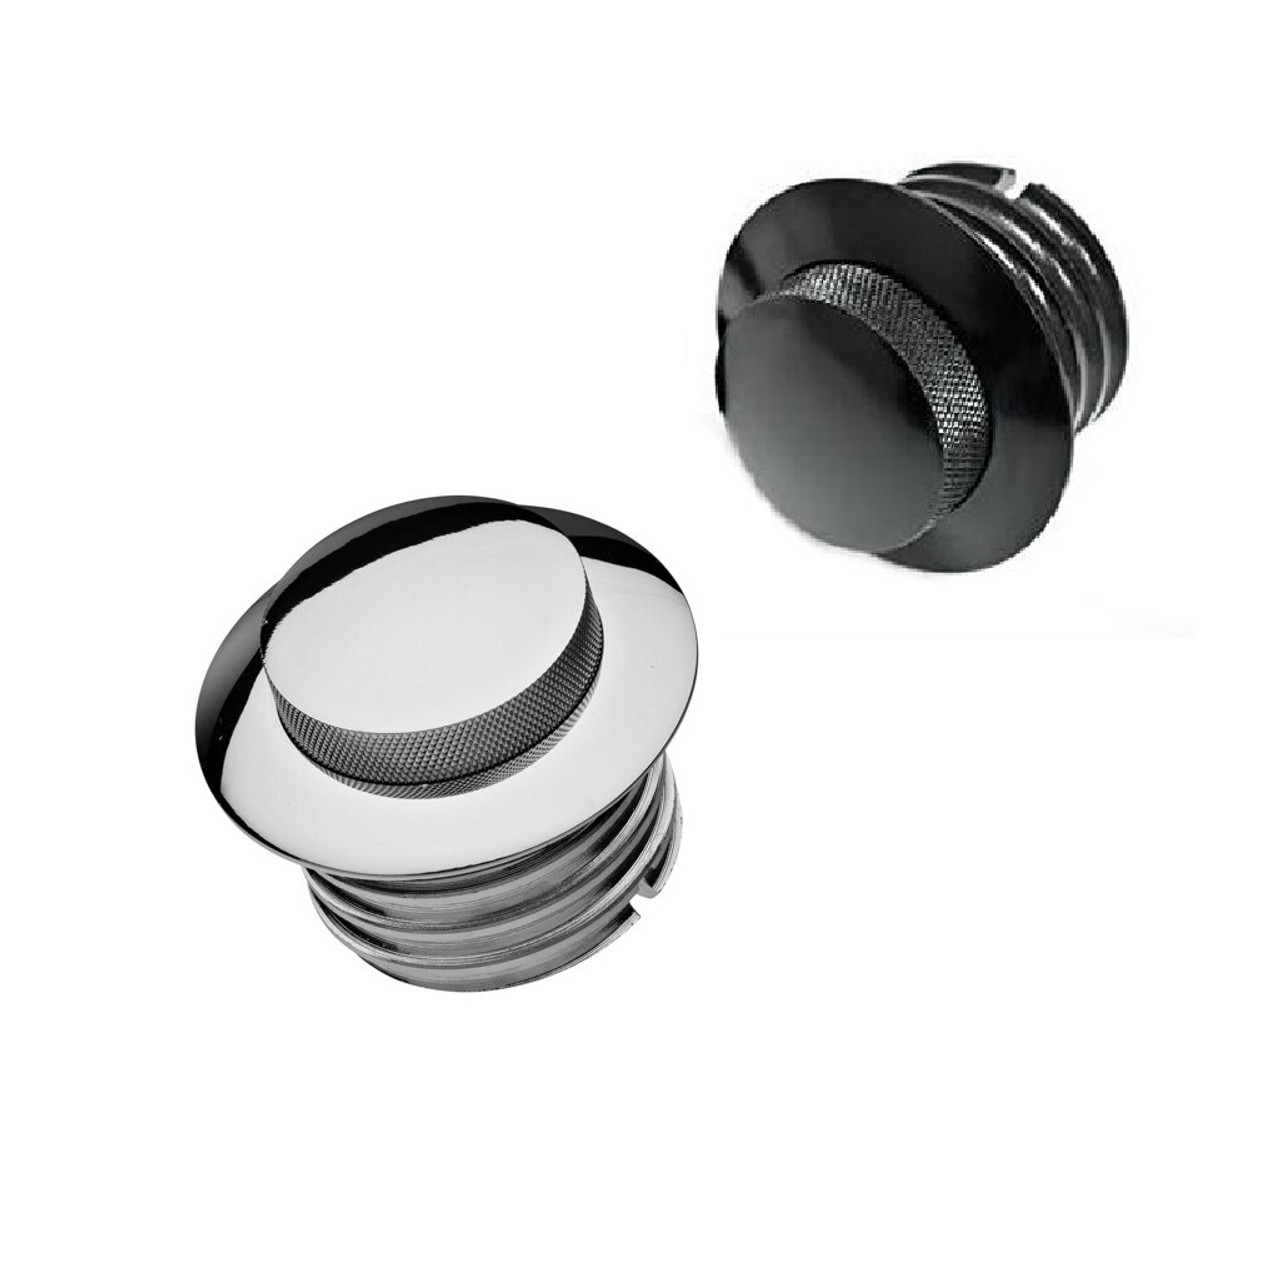 Locking Fuel Cap For Ford Orion 1990-1992 OE Fit 66mm Cap